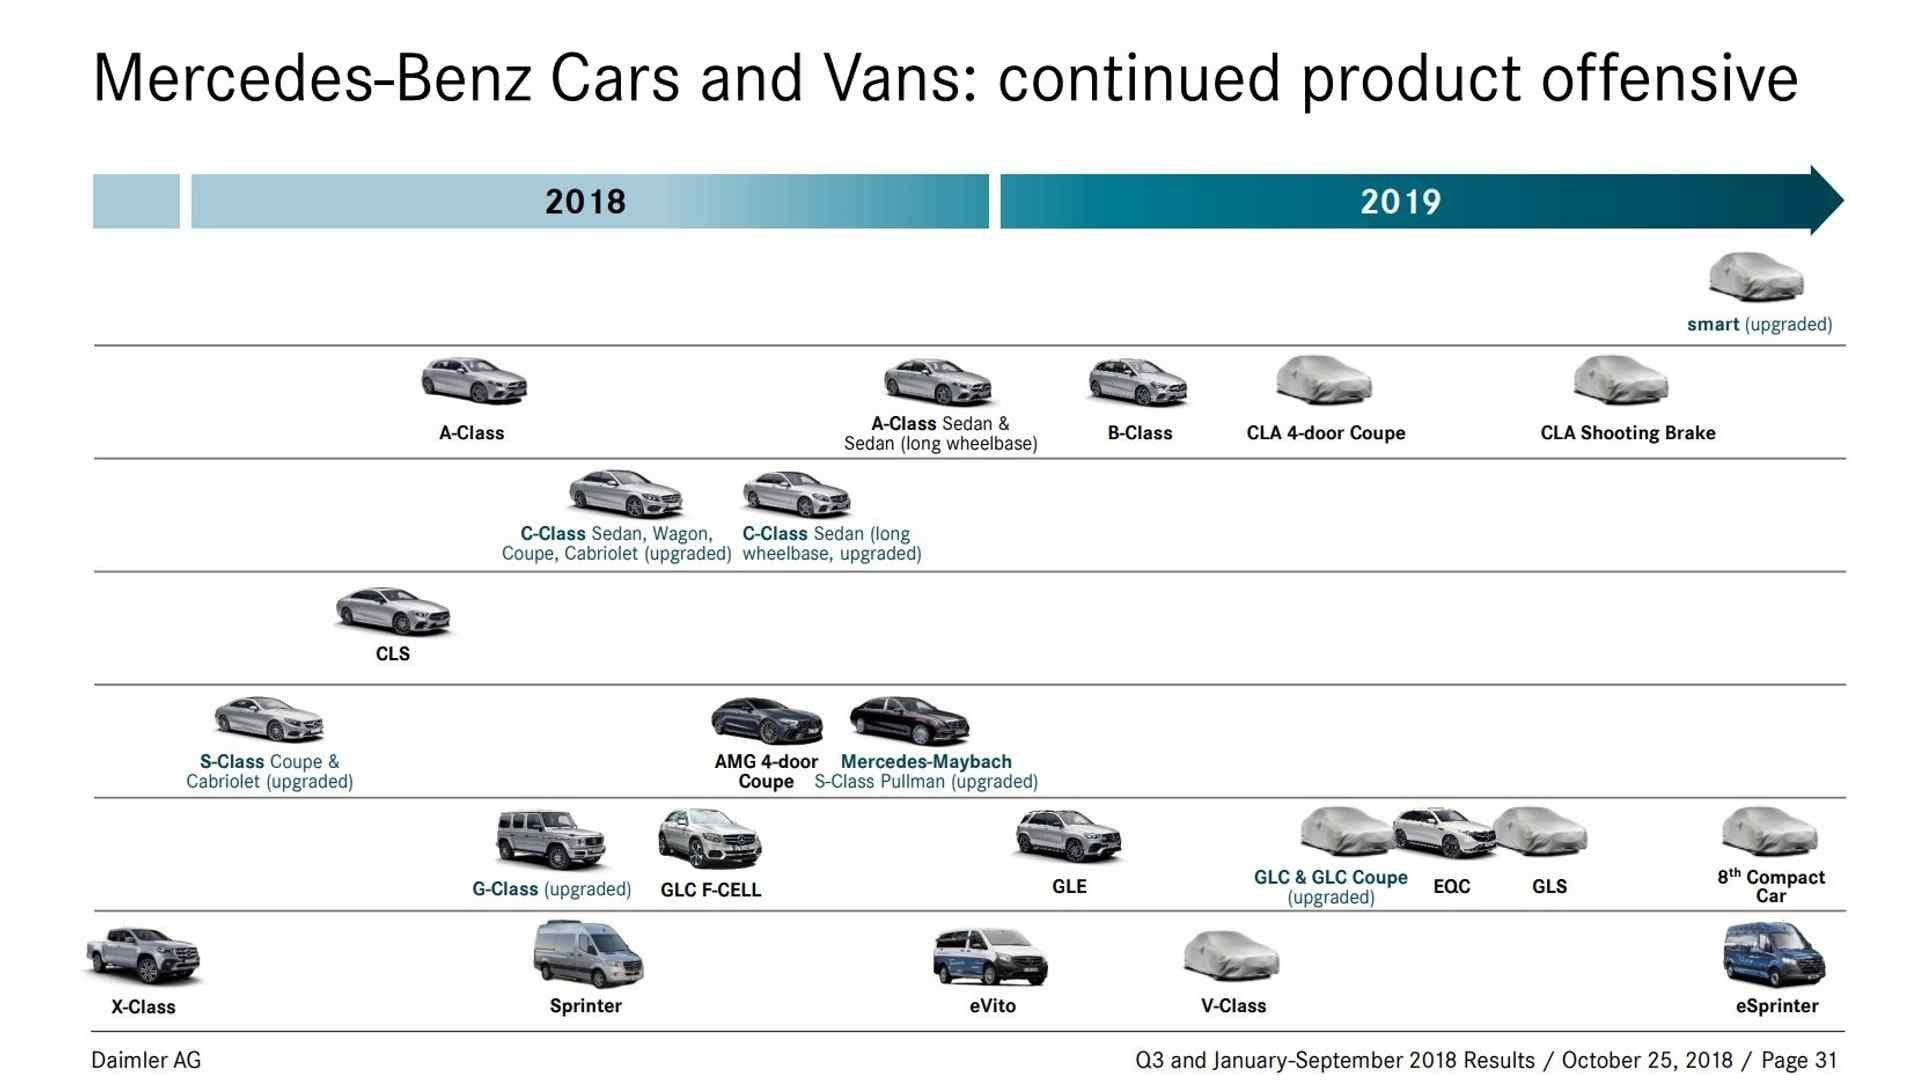 Mercedes-Benz-official-product-roadmap-for-2018-2019